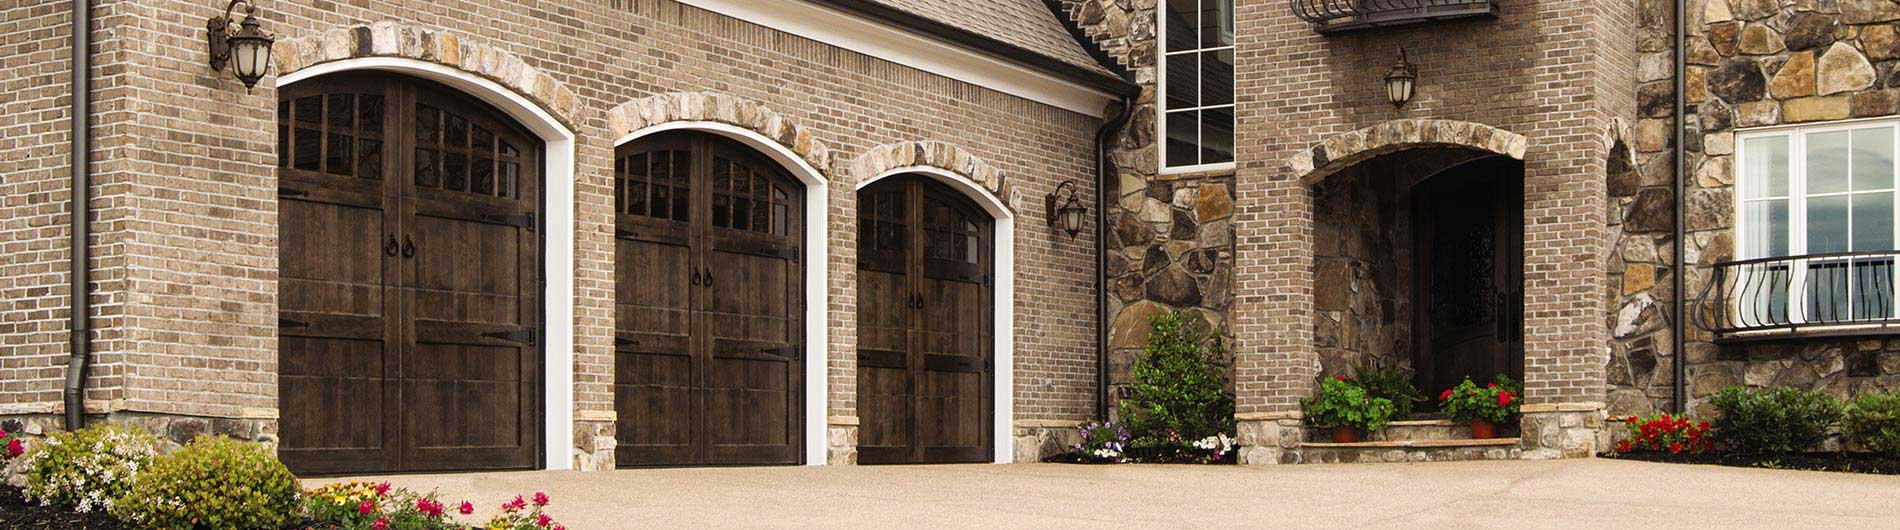 Custom Wood Garage Door From Precision Door & Custom Wood Garage Door From Precision Door - Precision Doors of San ...